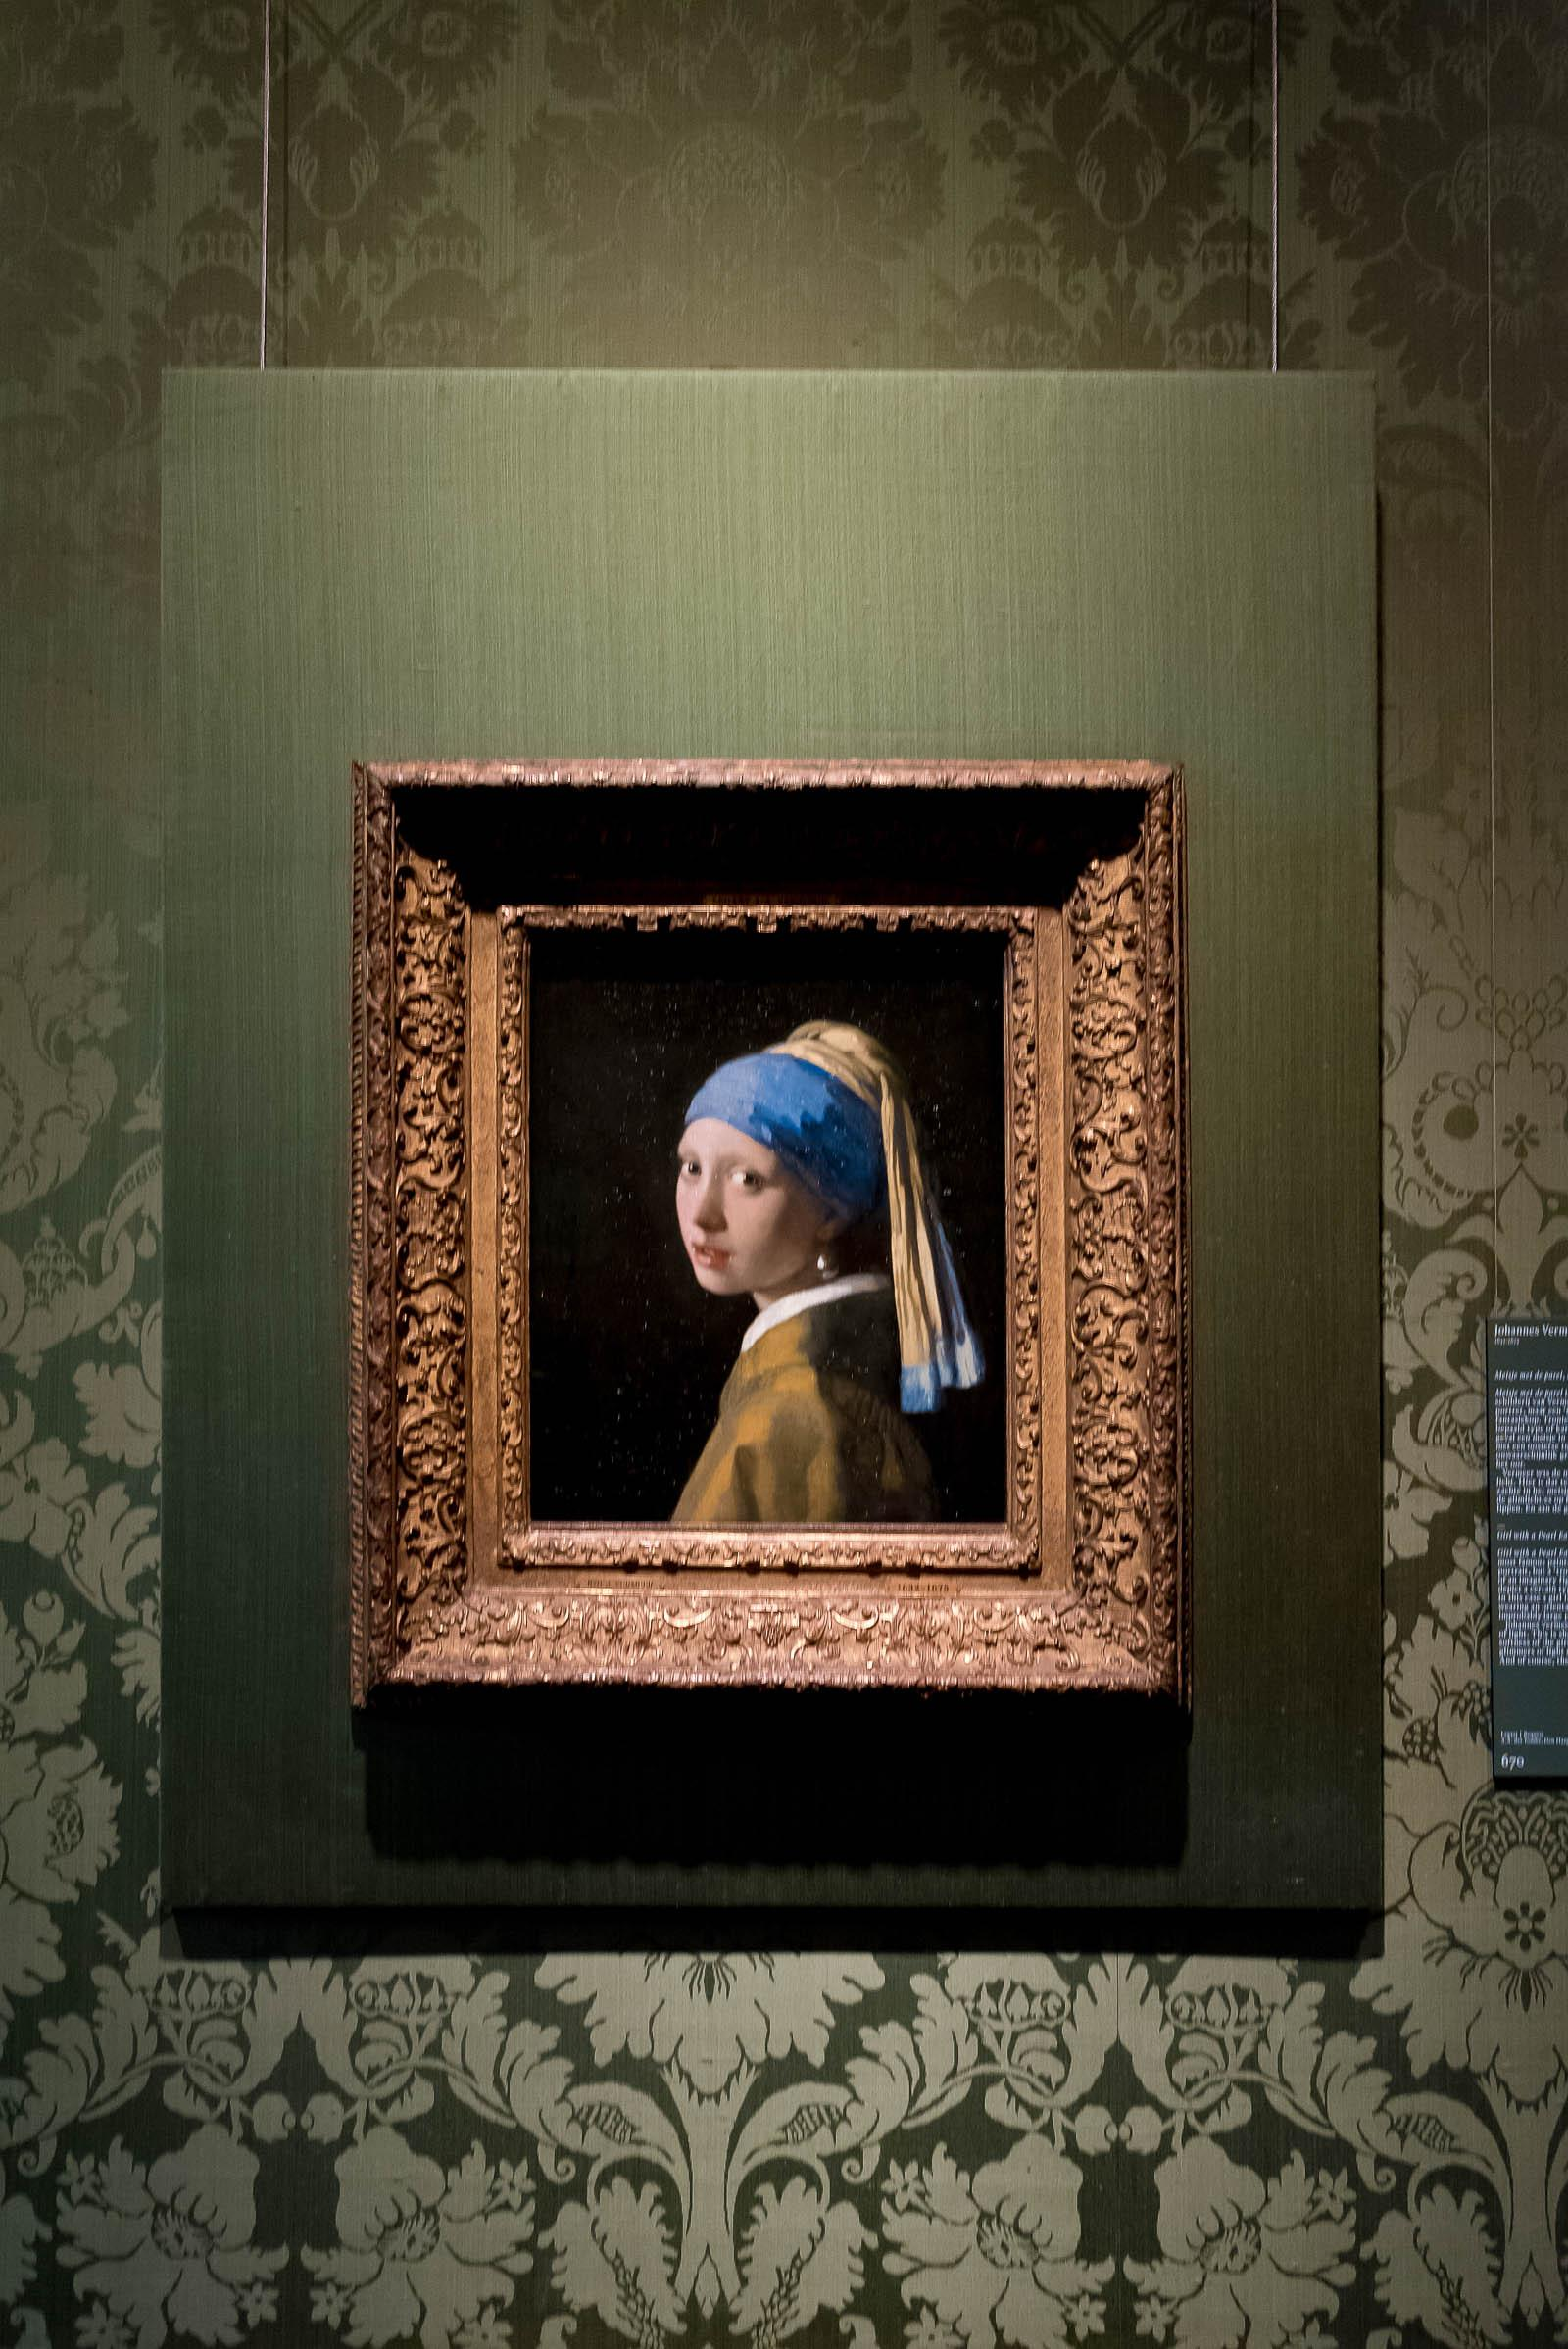 Vermeer's A Girl With A Pearl Earring Painting